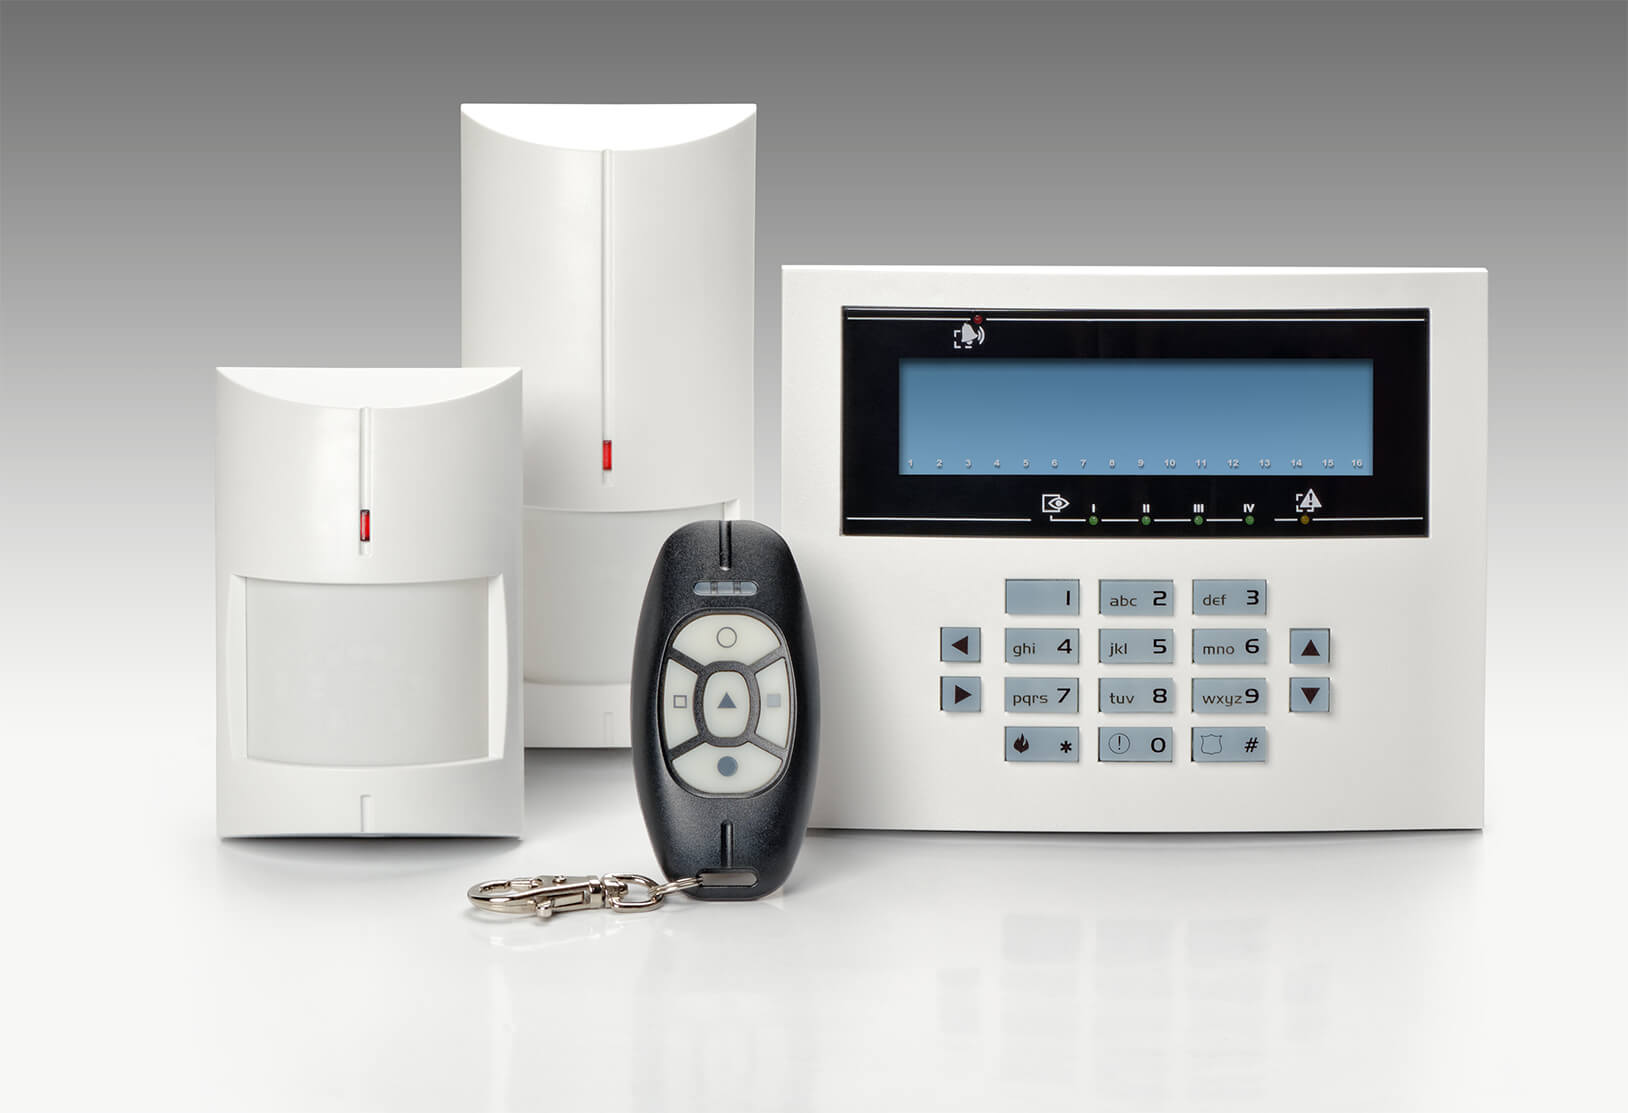 Burglar Alarms Repair in Finchley NW11 - Local Finchley NW11 alarm engineers.Call 02078872244 - See cost/price for burglar alarm repair and book your alarm engineer. No Hidden charges,No Contracts, Book as you need.Engineers on demand.All alarm makes repaired.Same day service ability.